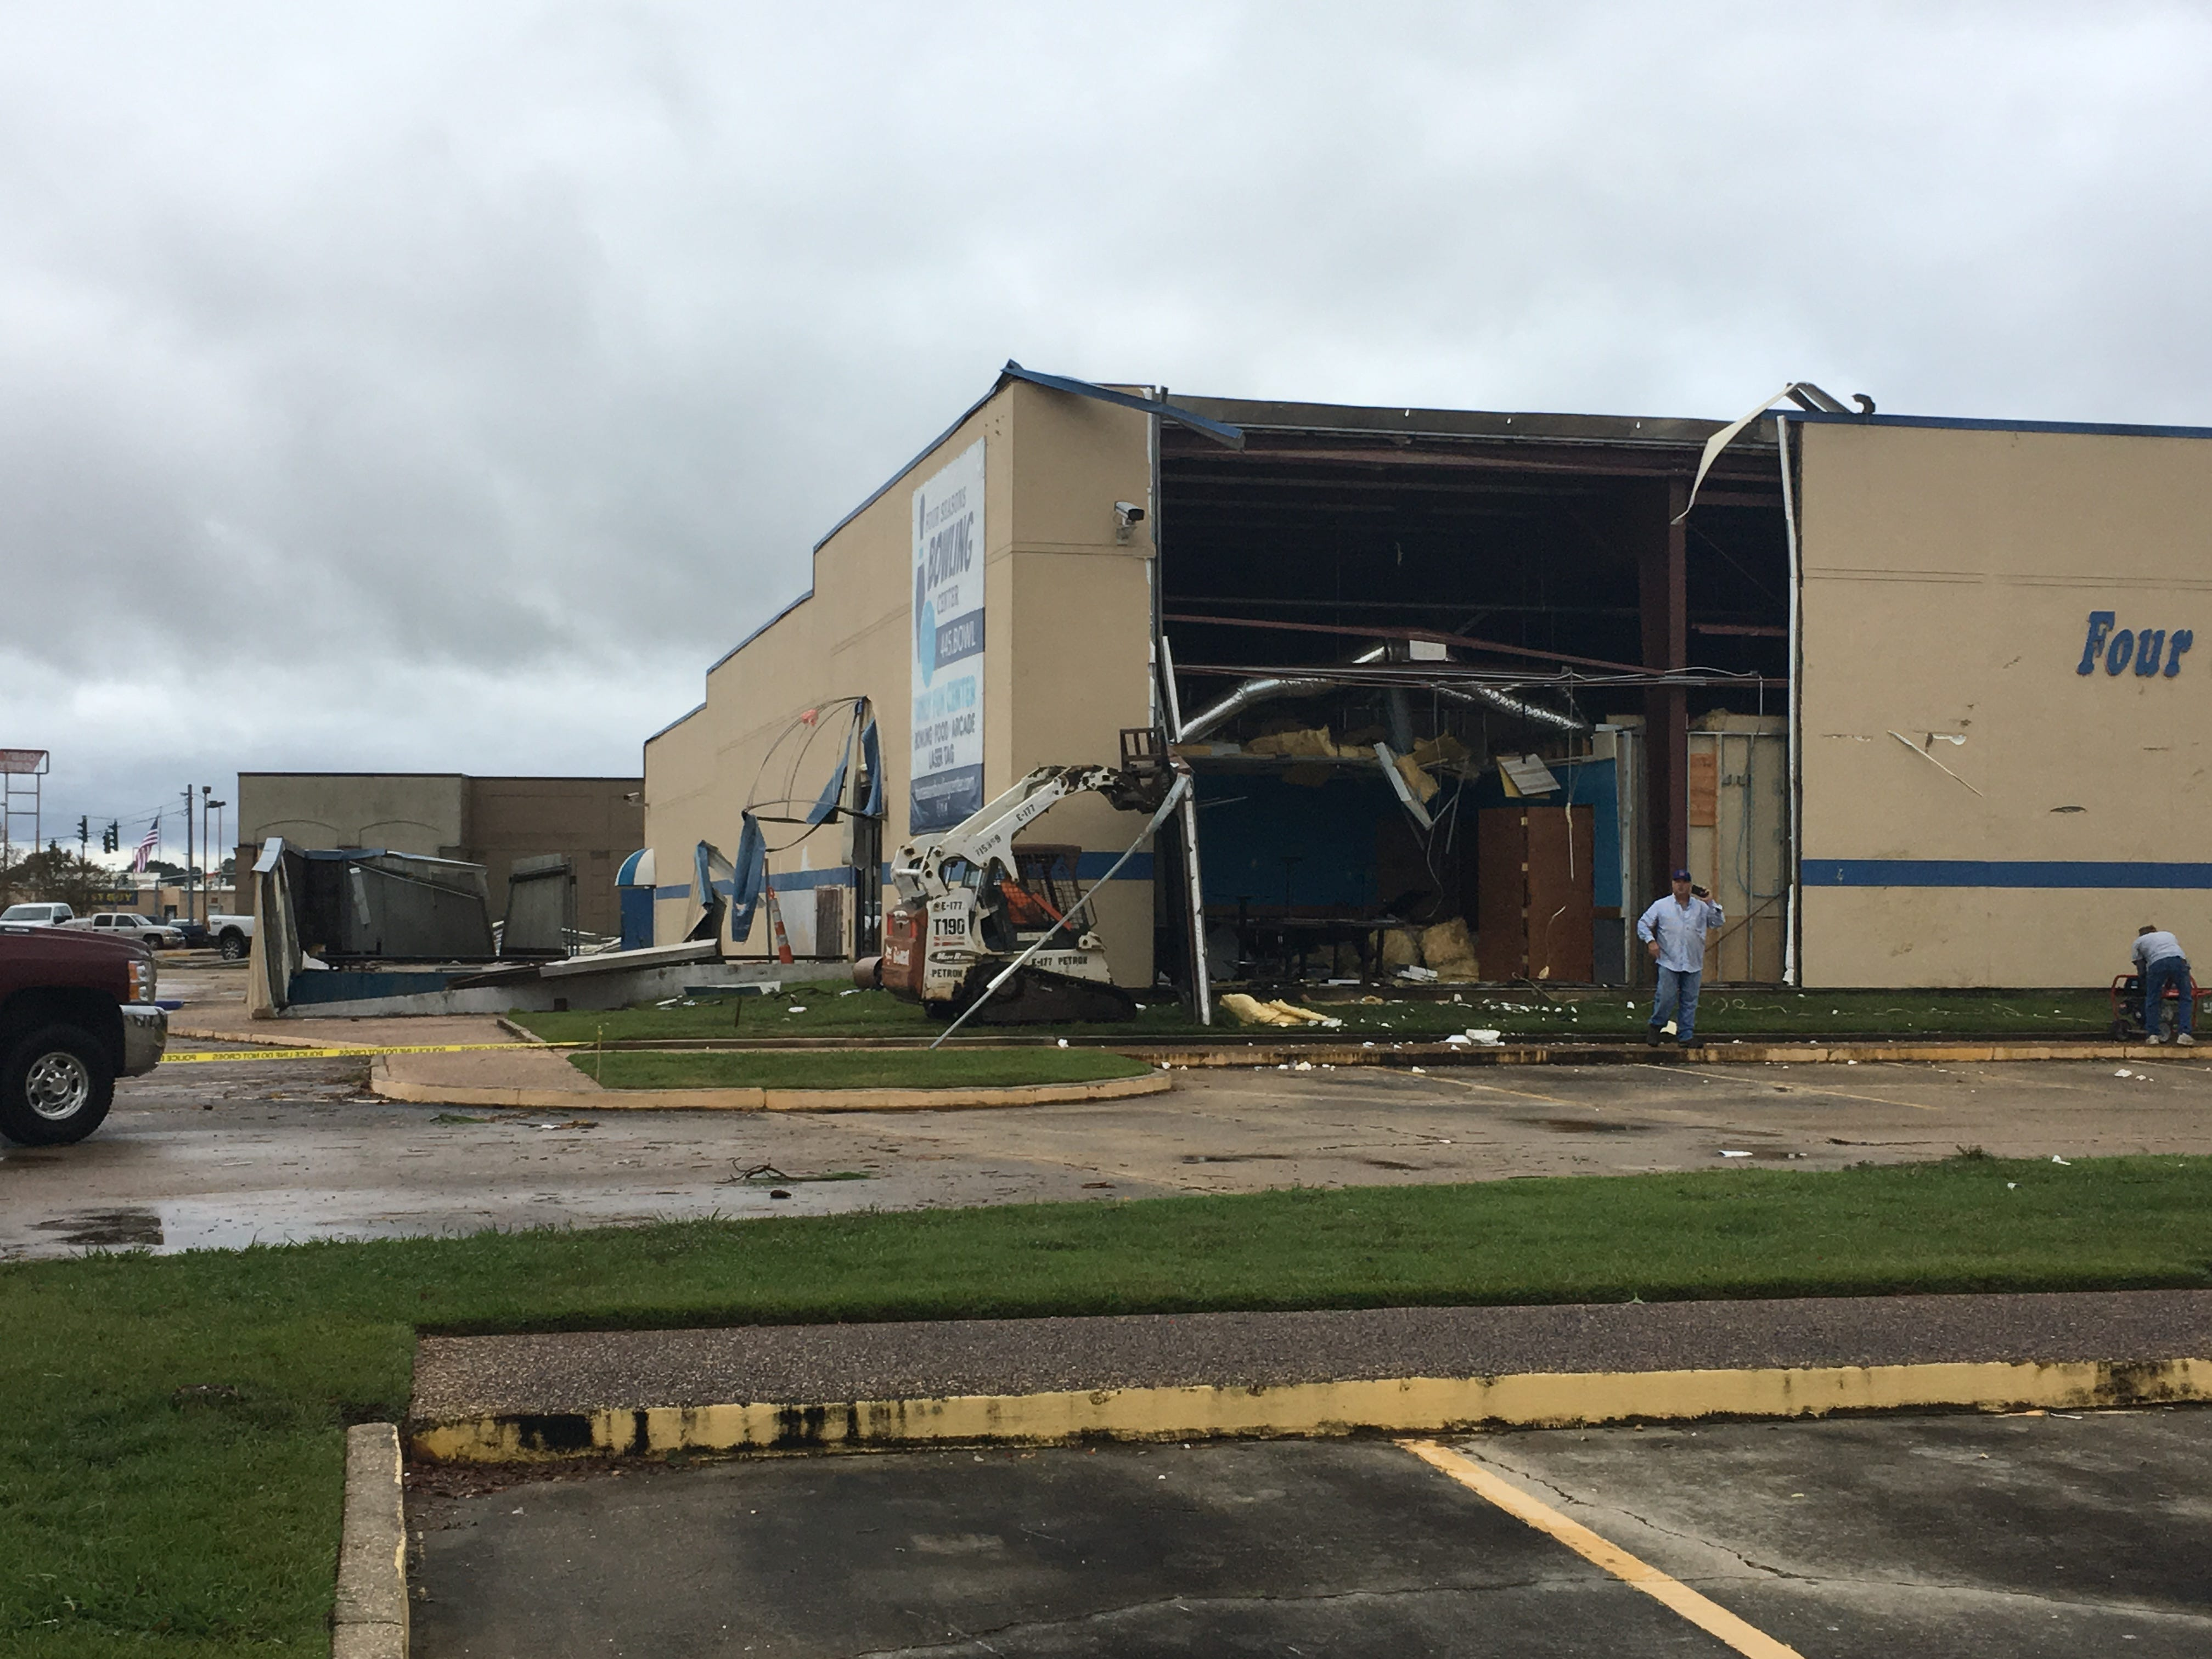 Part of the wall at the Four Season's Bowling Center was destroyed in the Wednesday night storm.